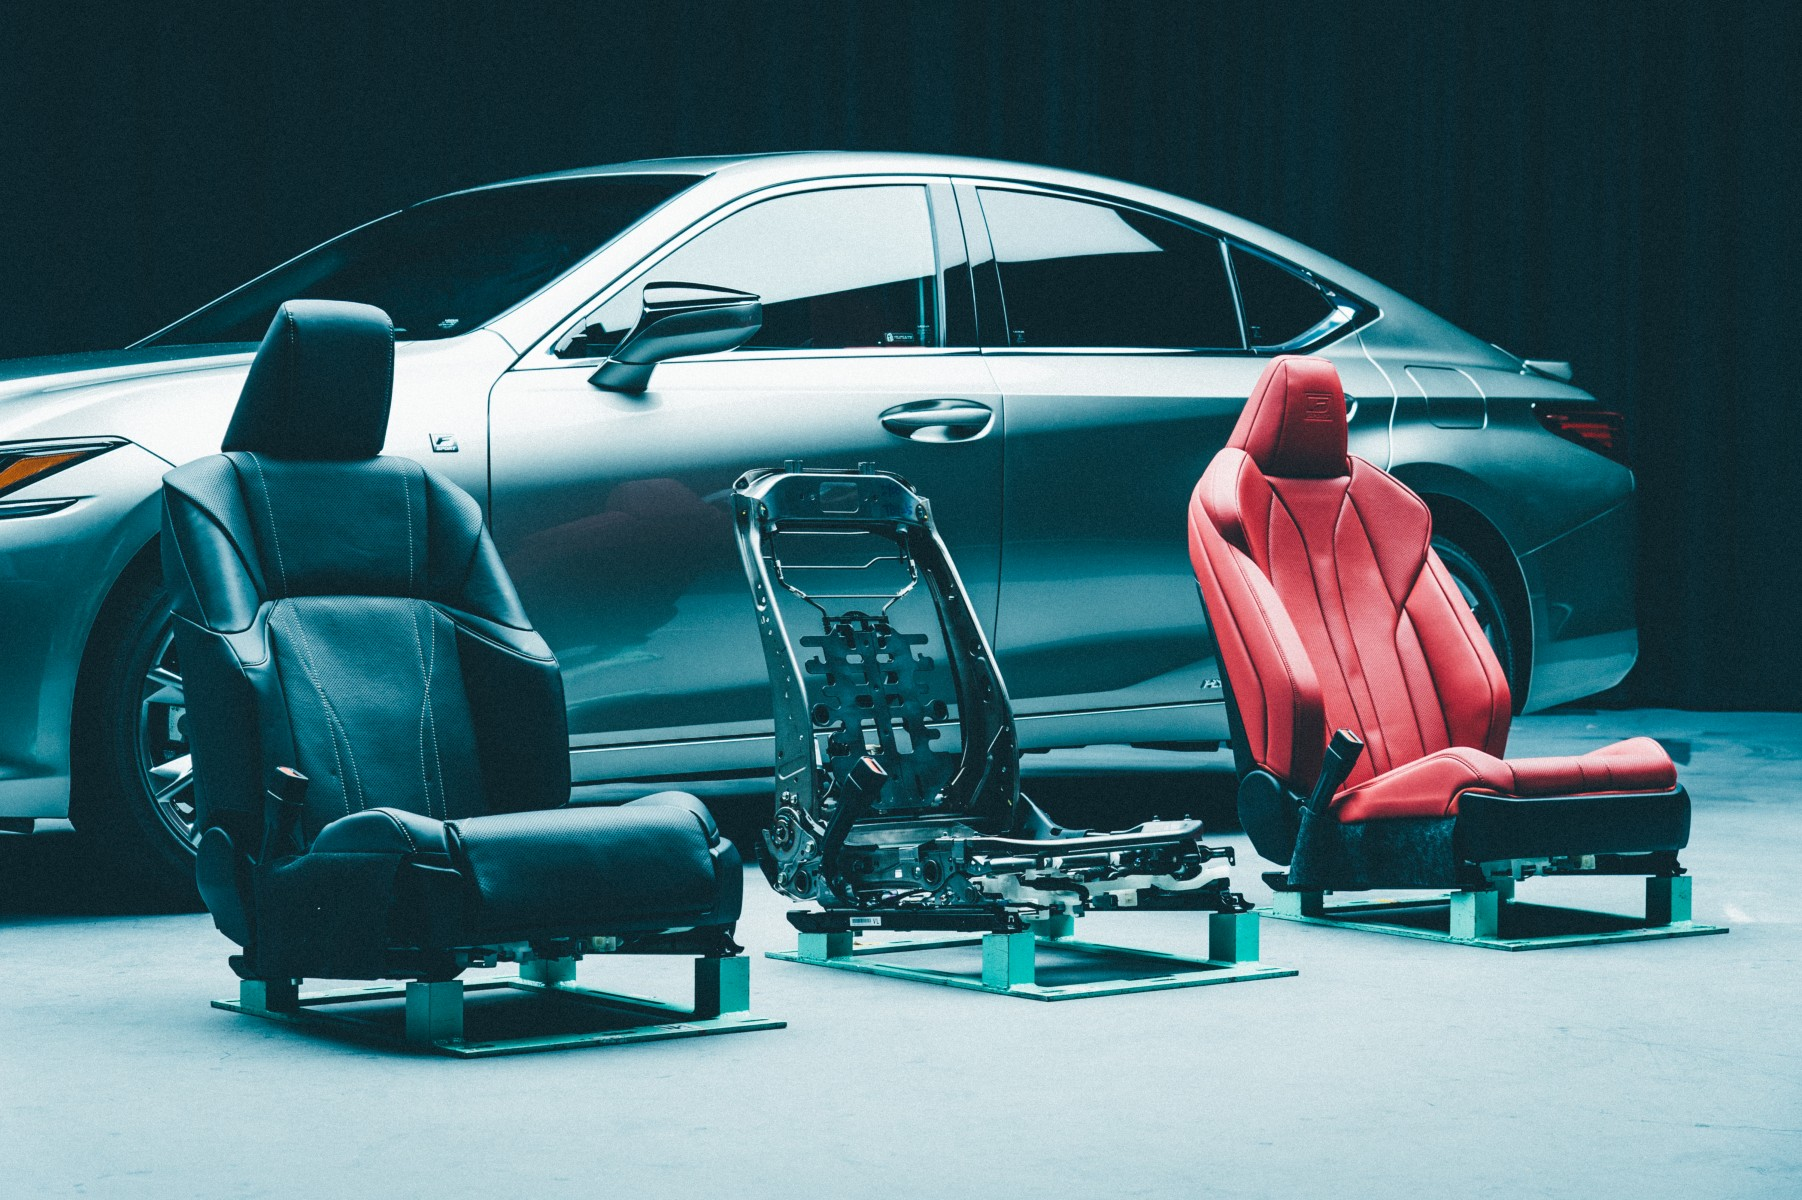 2019 Lexus ES seats prototypes